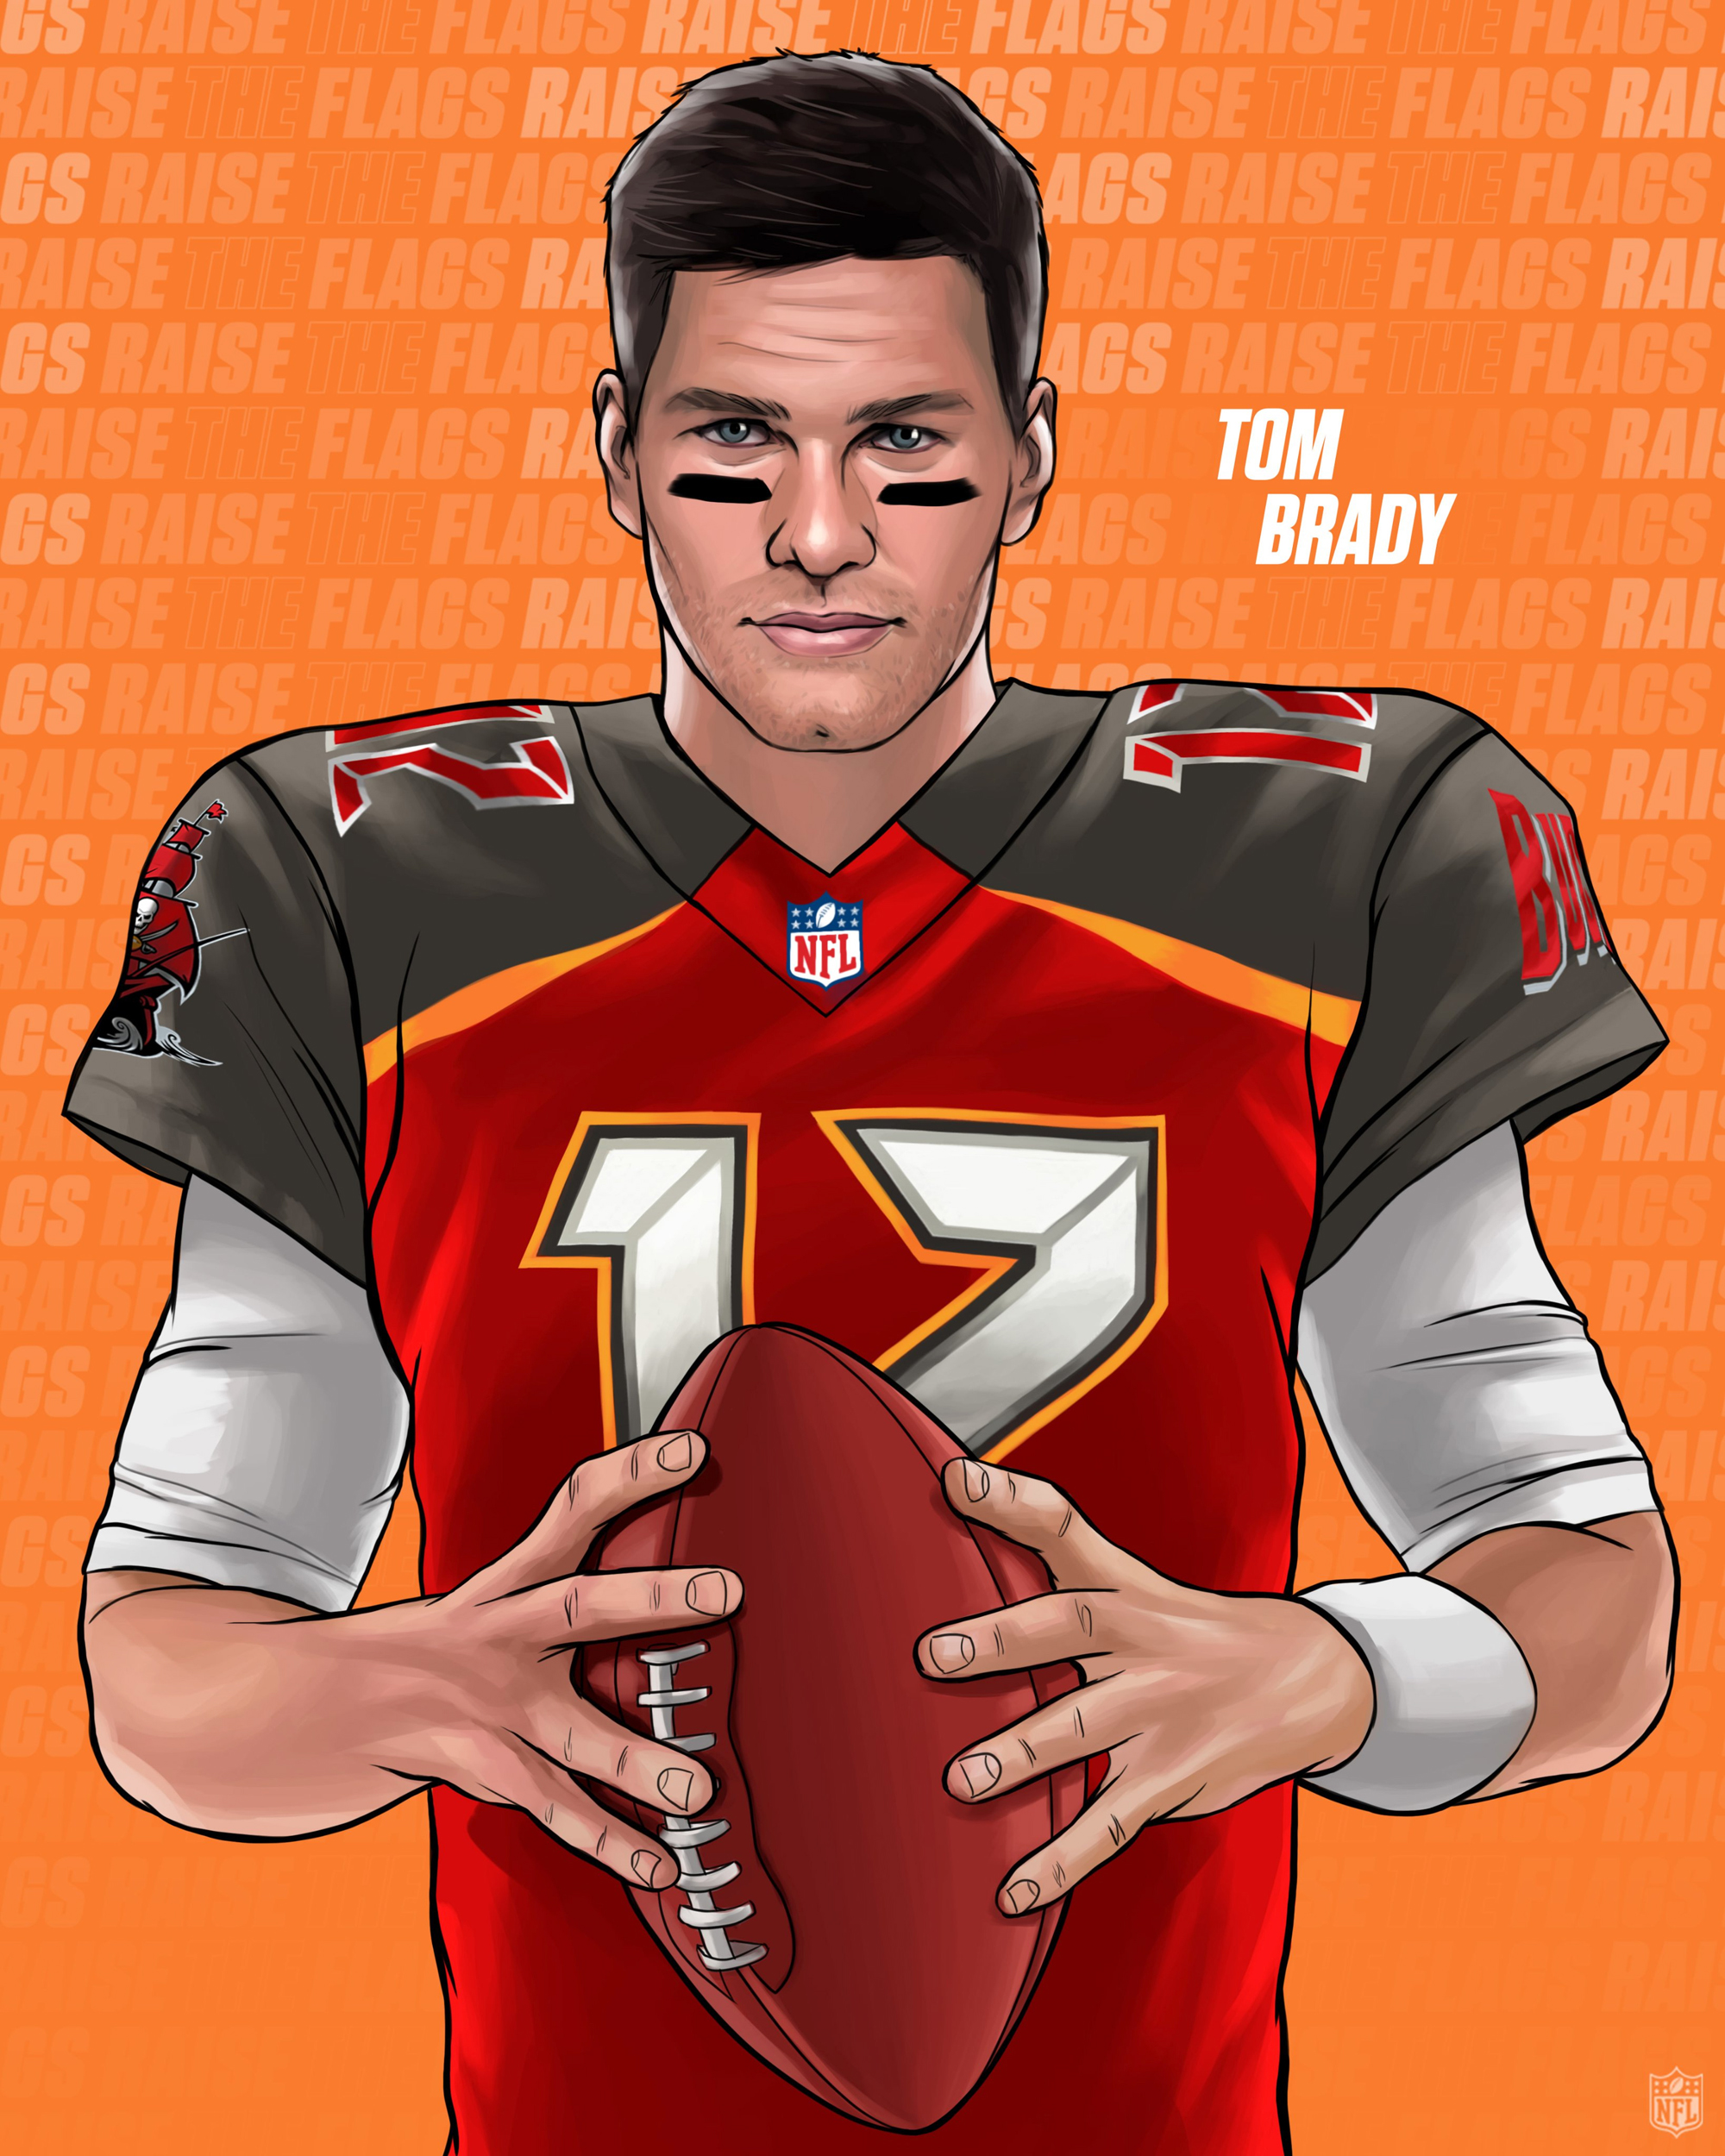 Tom Brady To Join Tampa Bay Buccaneers After Leaving New England Patriots Nfl Says